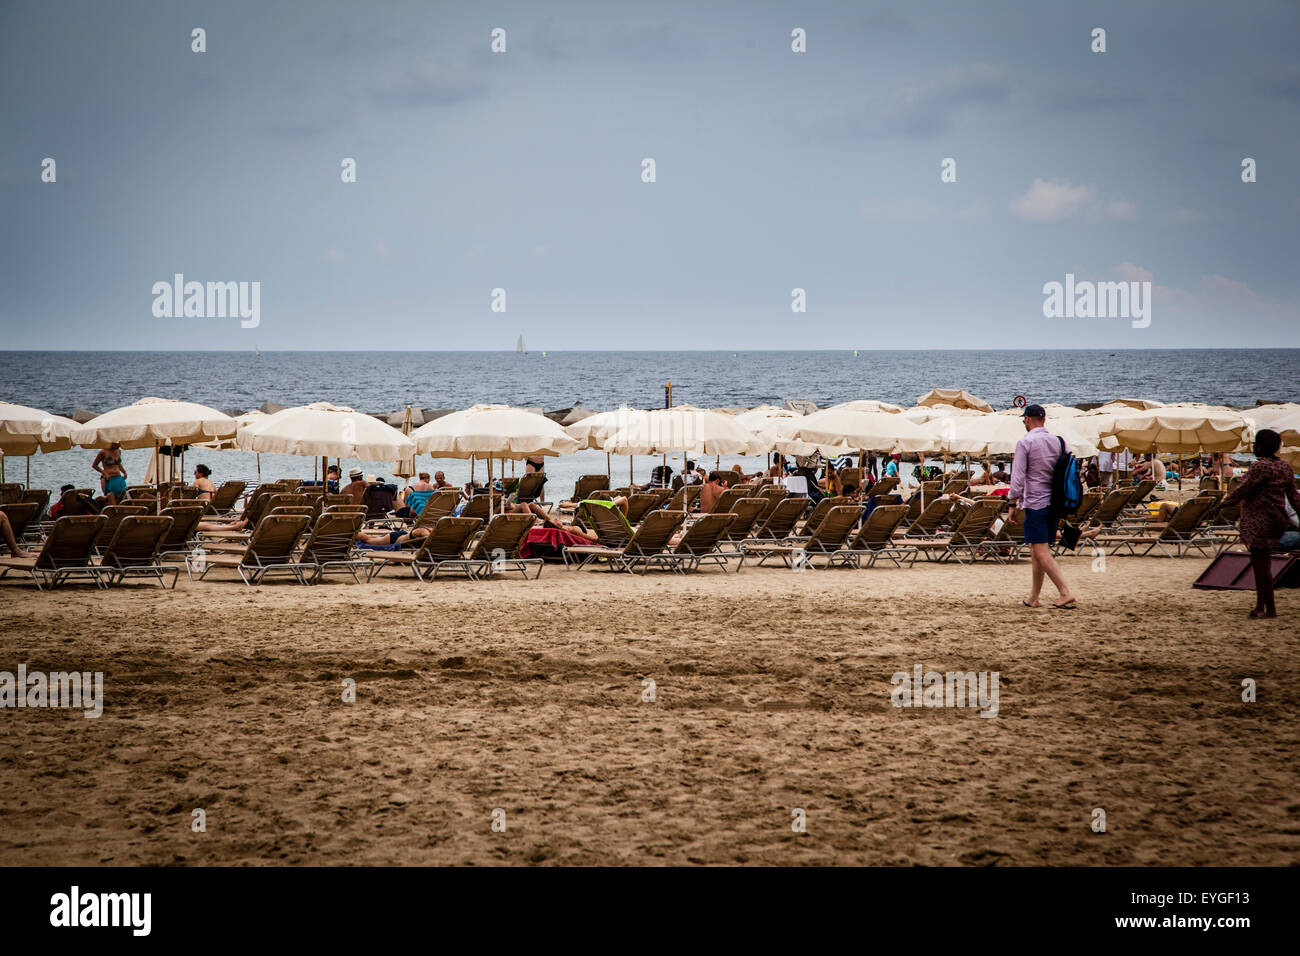 Sun loungers and straw shade umbrellas on a beach by the Mediterranean Sea Stock Photo